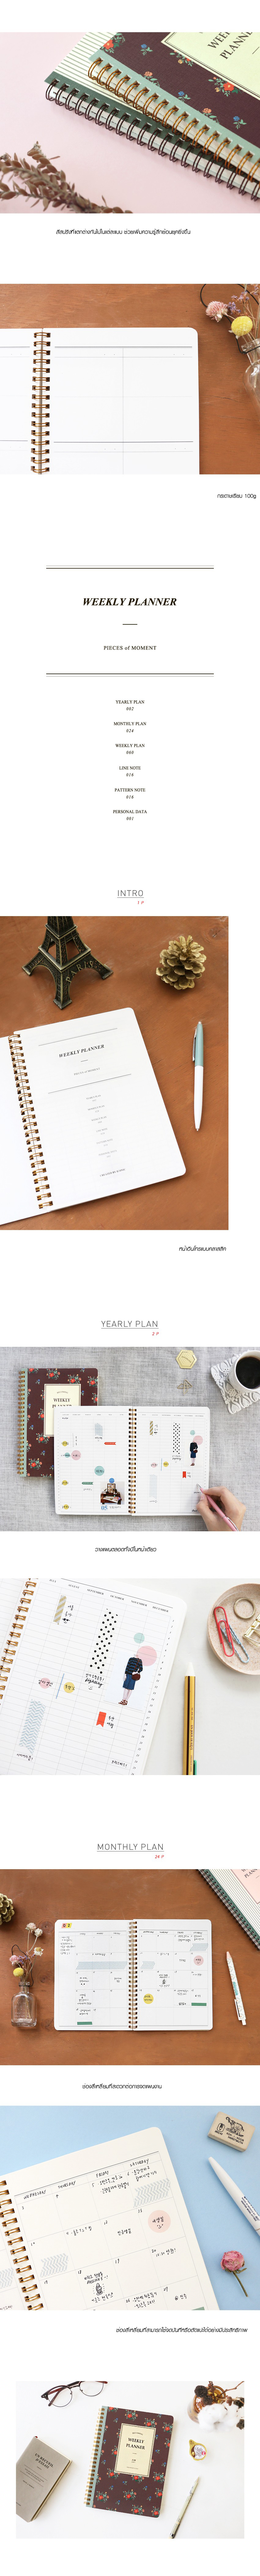 becoming-weekly-planner-2.jpg